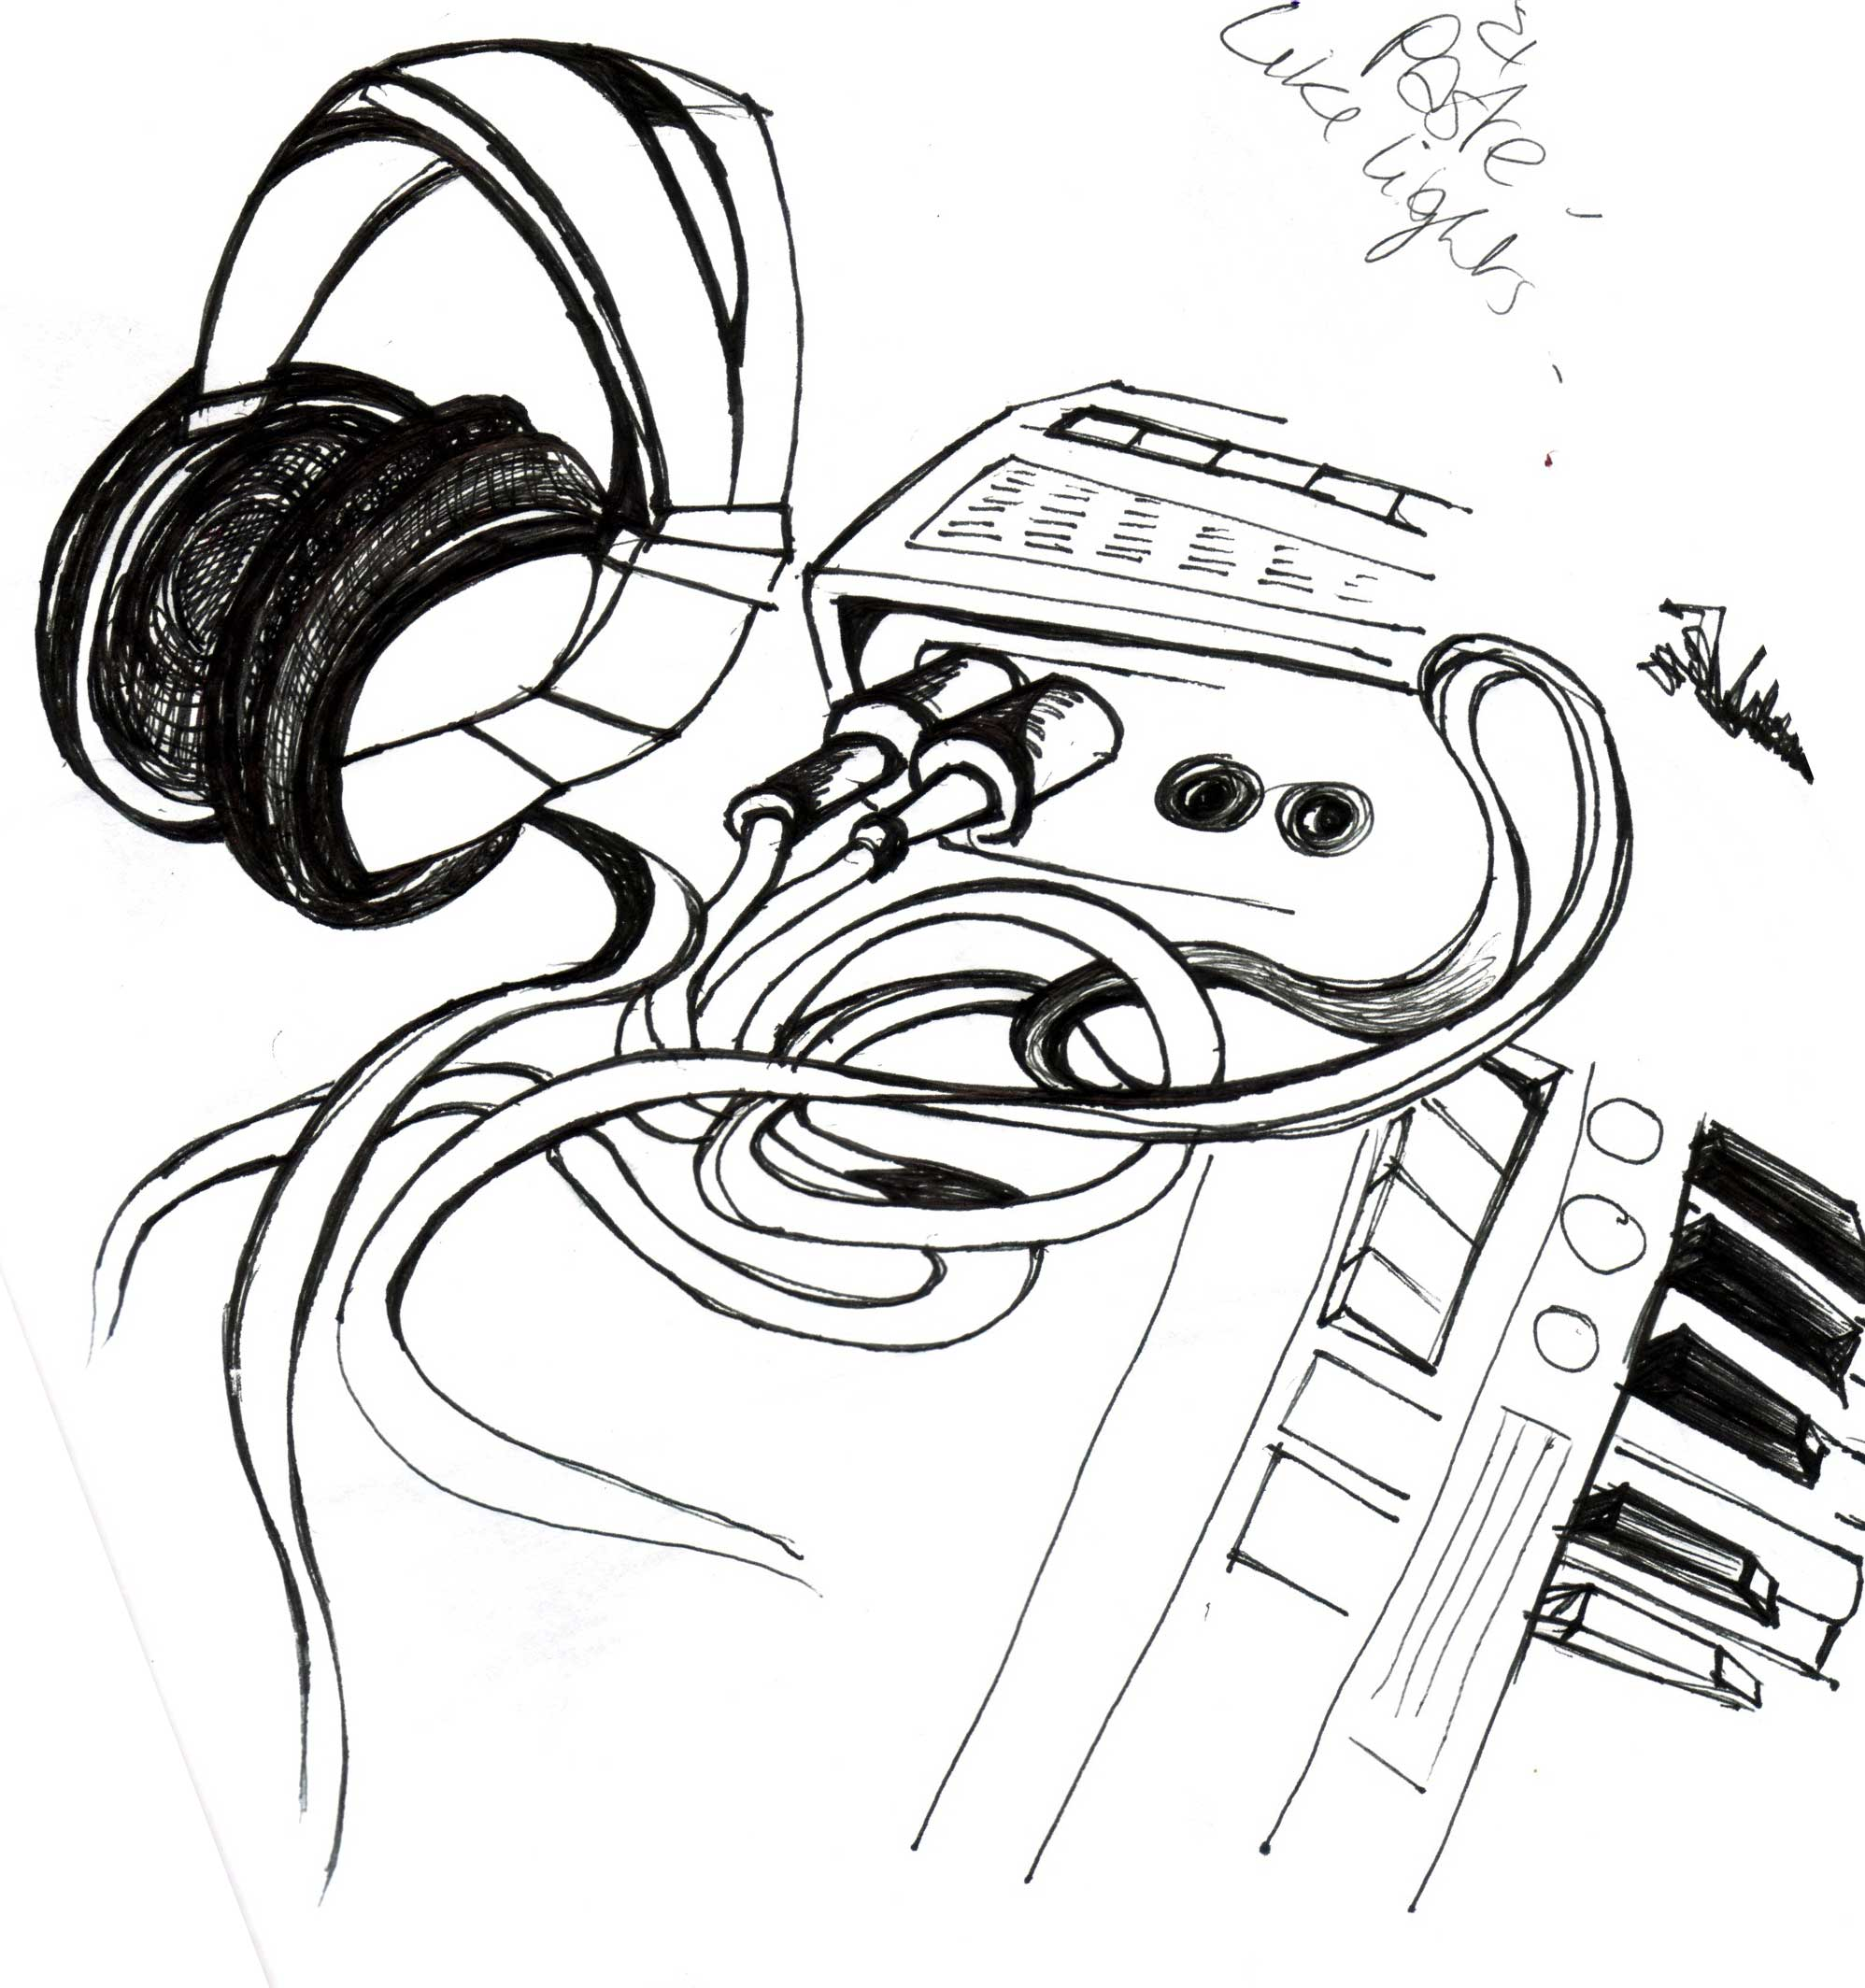 wires drawing at getdrawings com